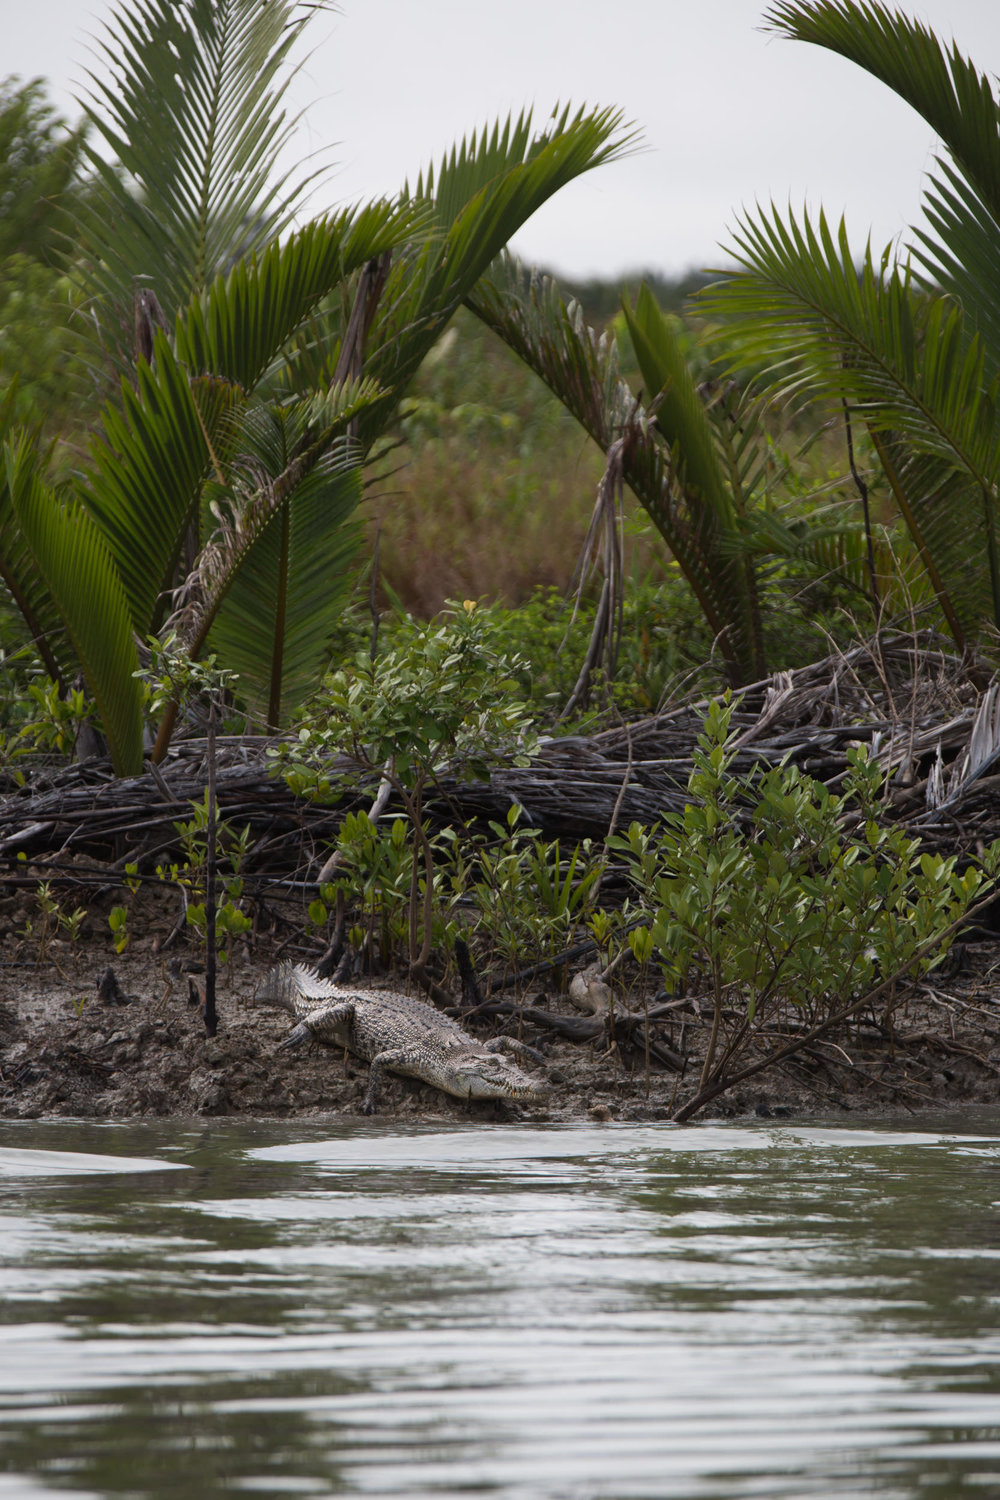 Saltwater crocodiles line the mangrove covered shore